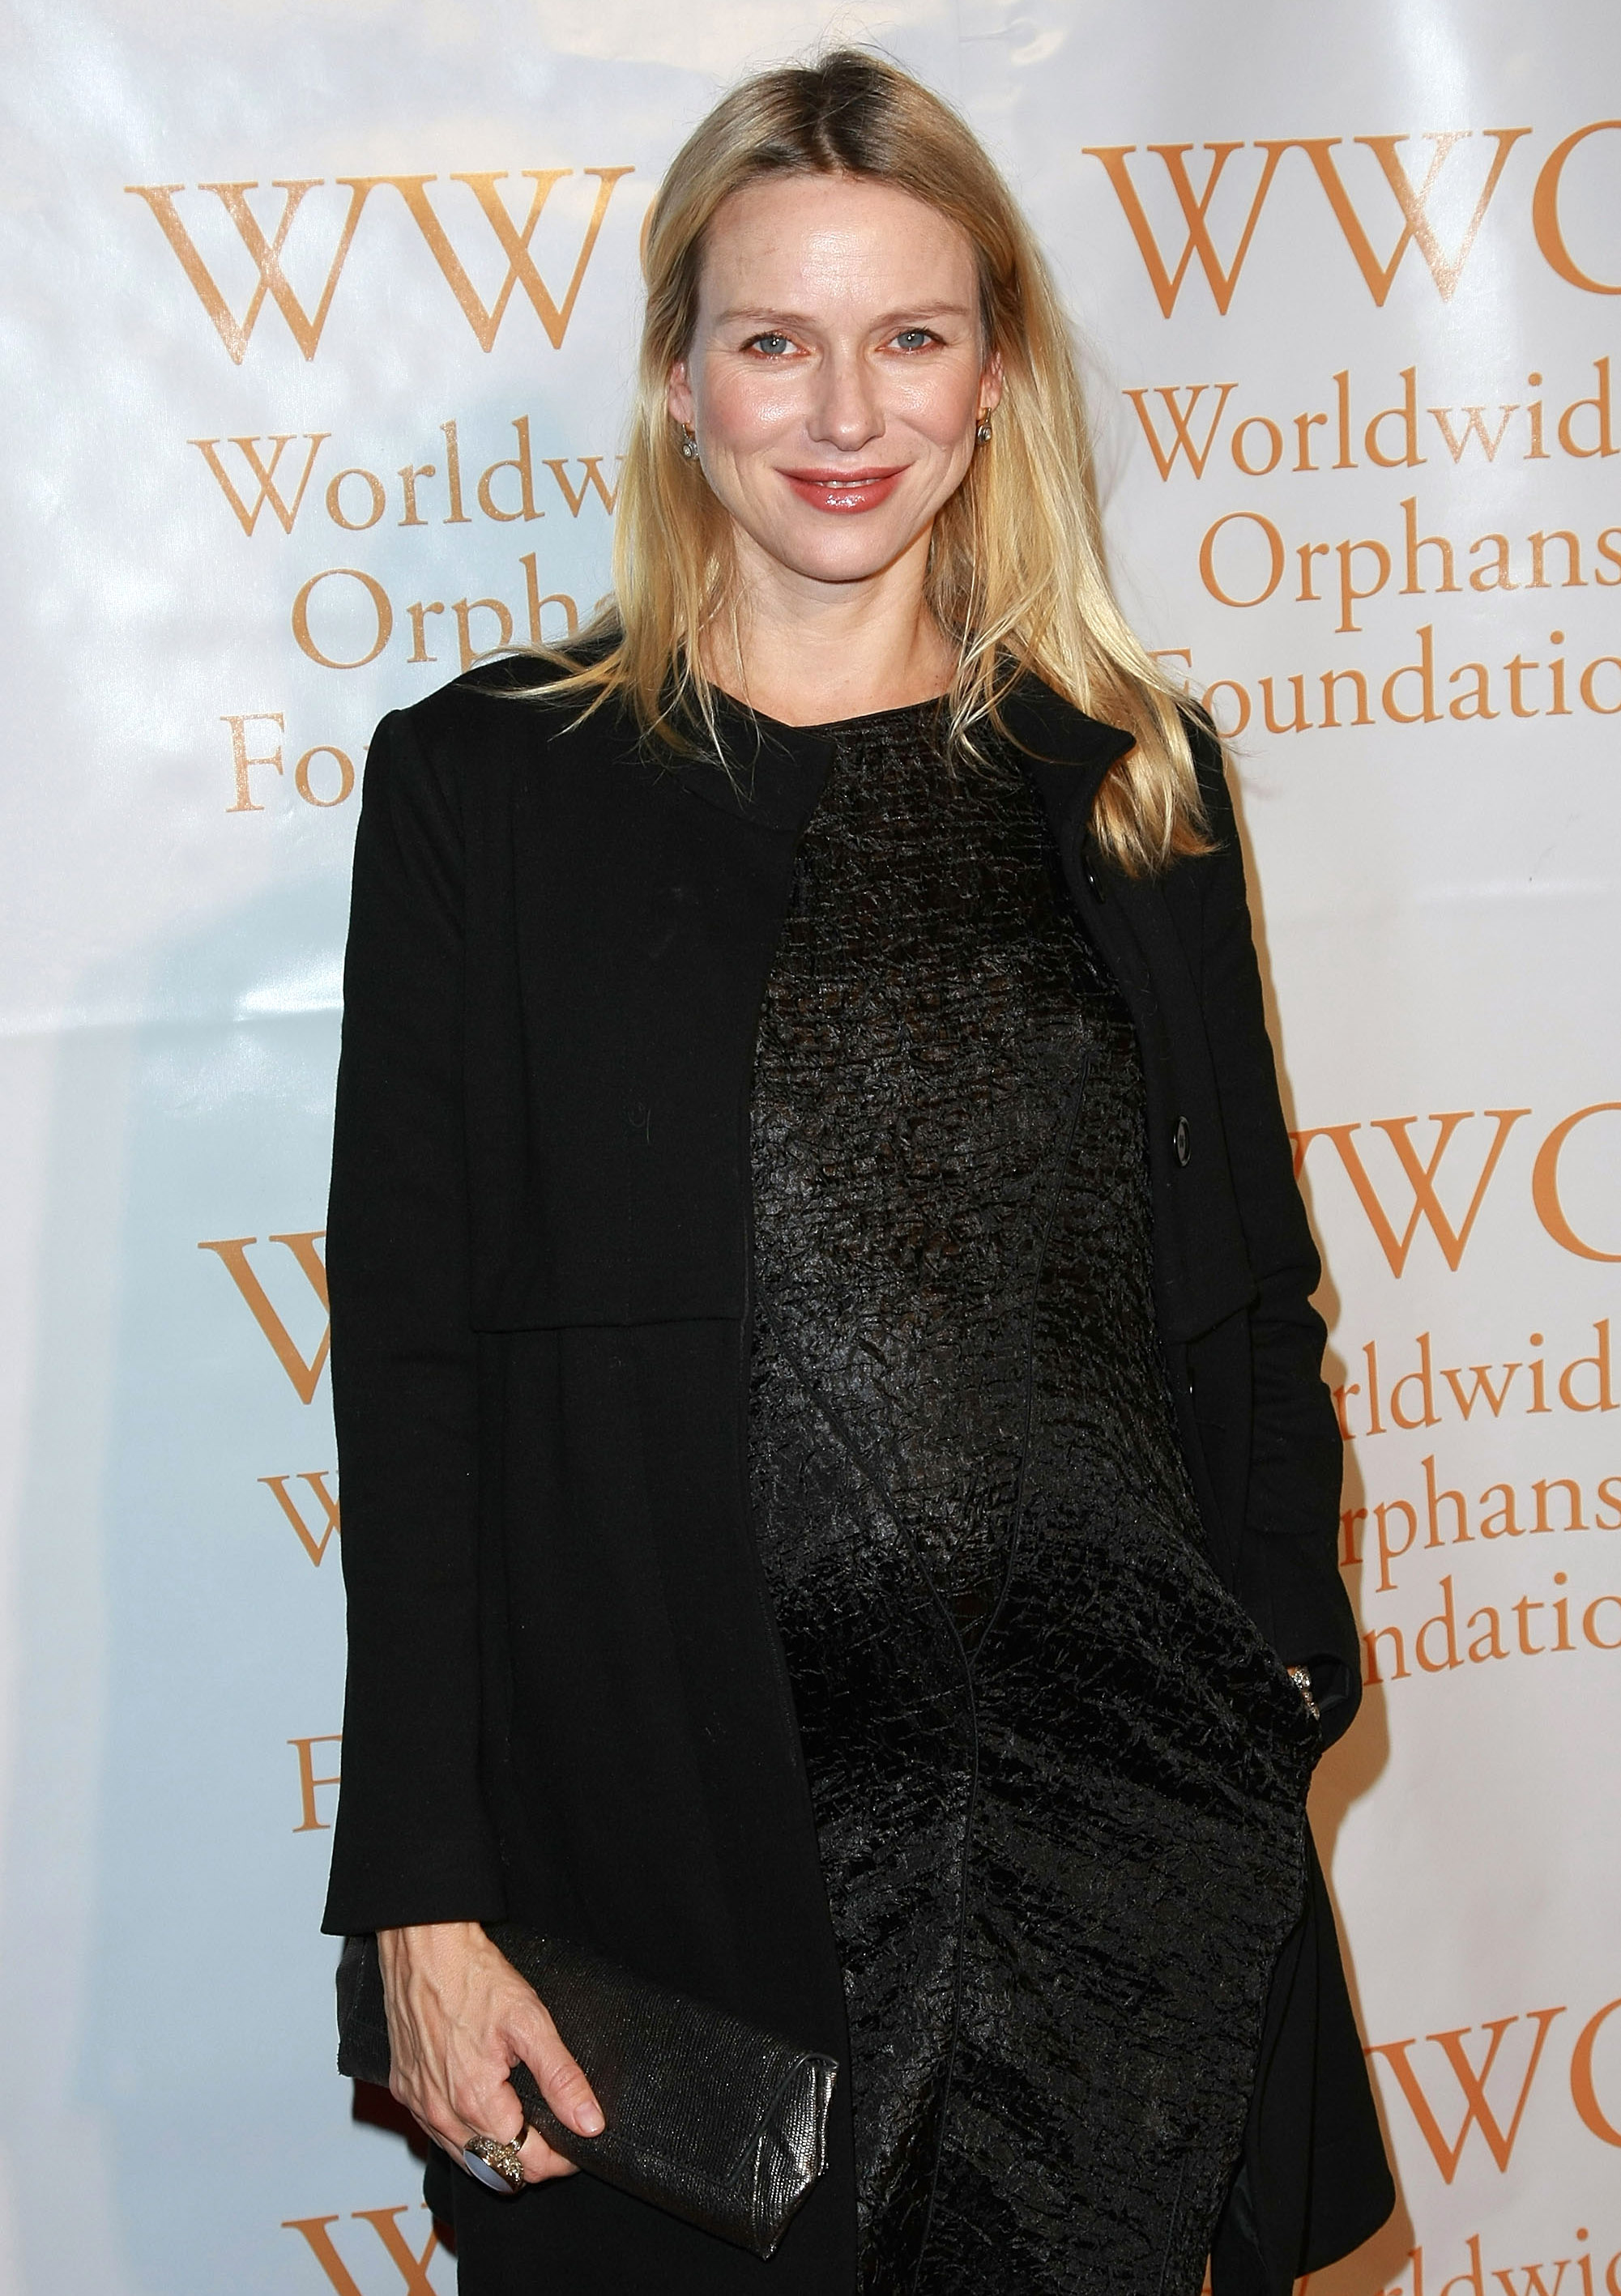 81996_Celebutopia-Naomi_Watts-4th_Annual_Worldwide_Orphans_Foundation_benefit_gala-03_122_427lo.jpg